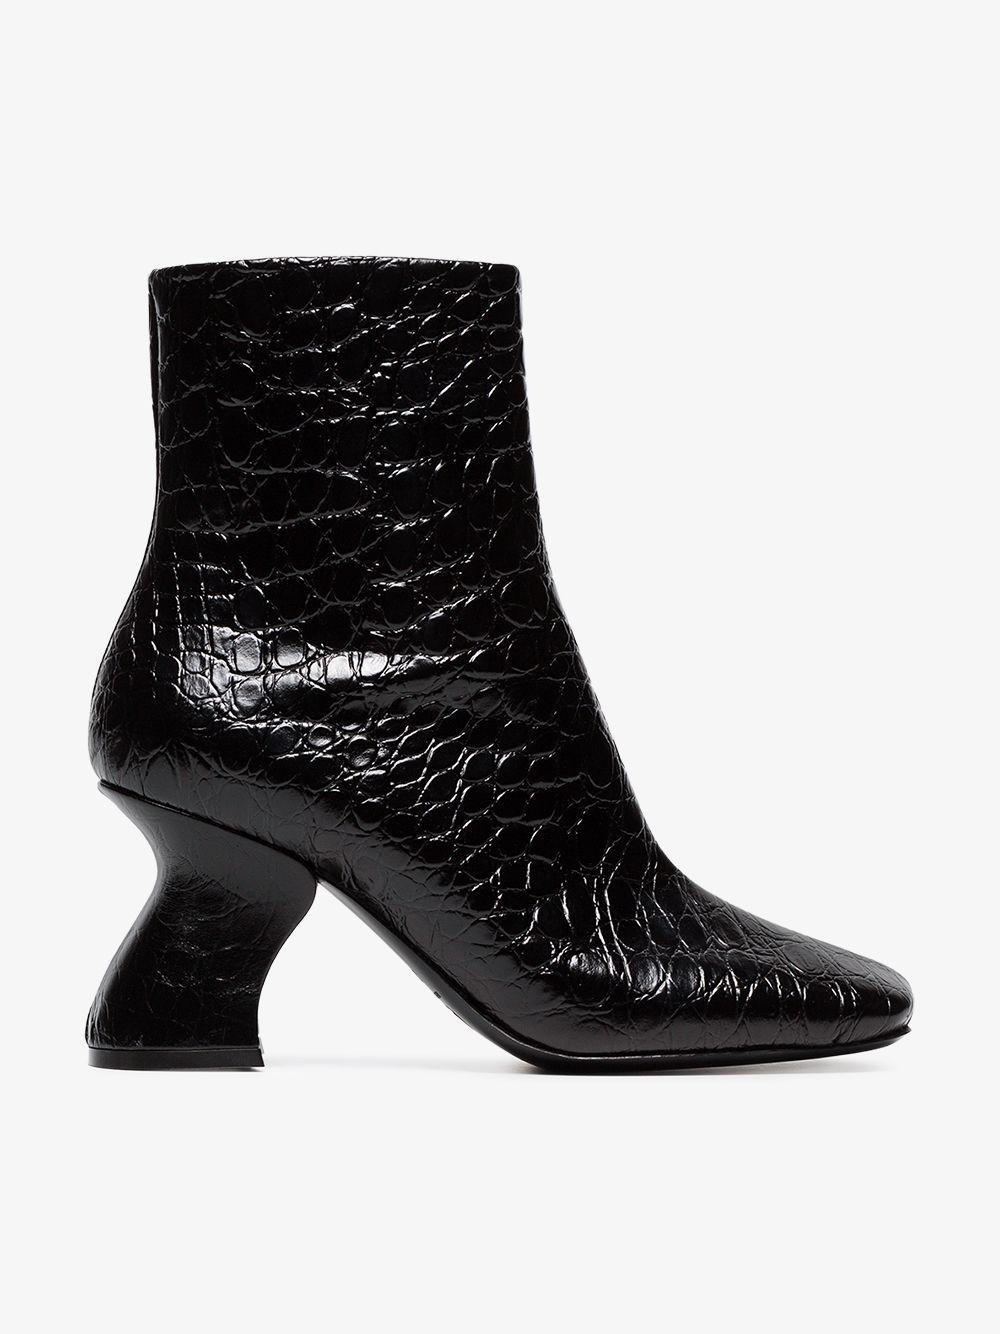 3f831a8504c3bc Dries Van Noten - Black Snakeskin Embossed 80 Leather Ankle Boots - Lyst.  View fullscreen